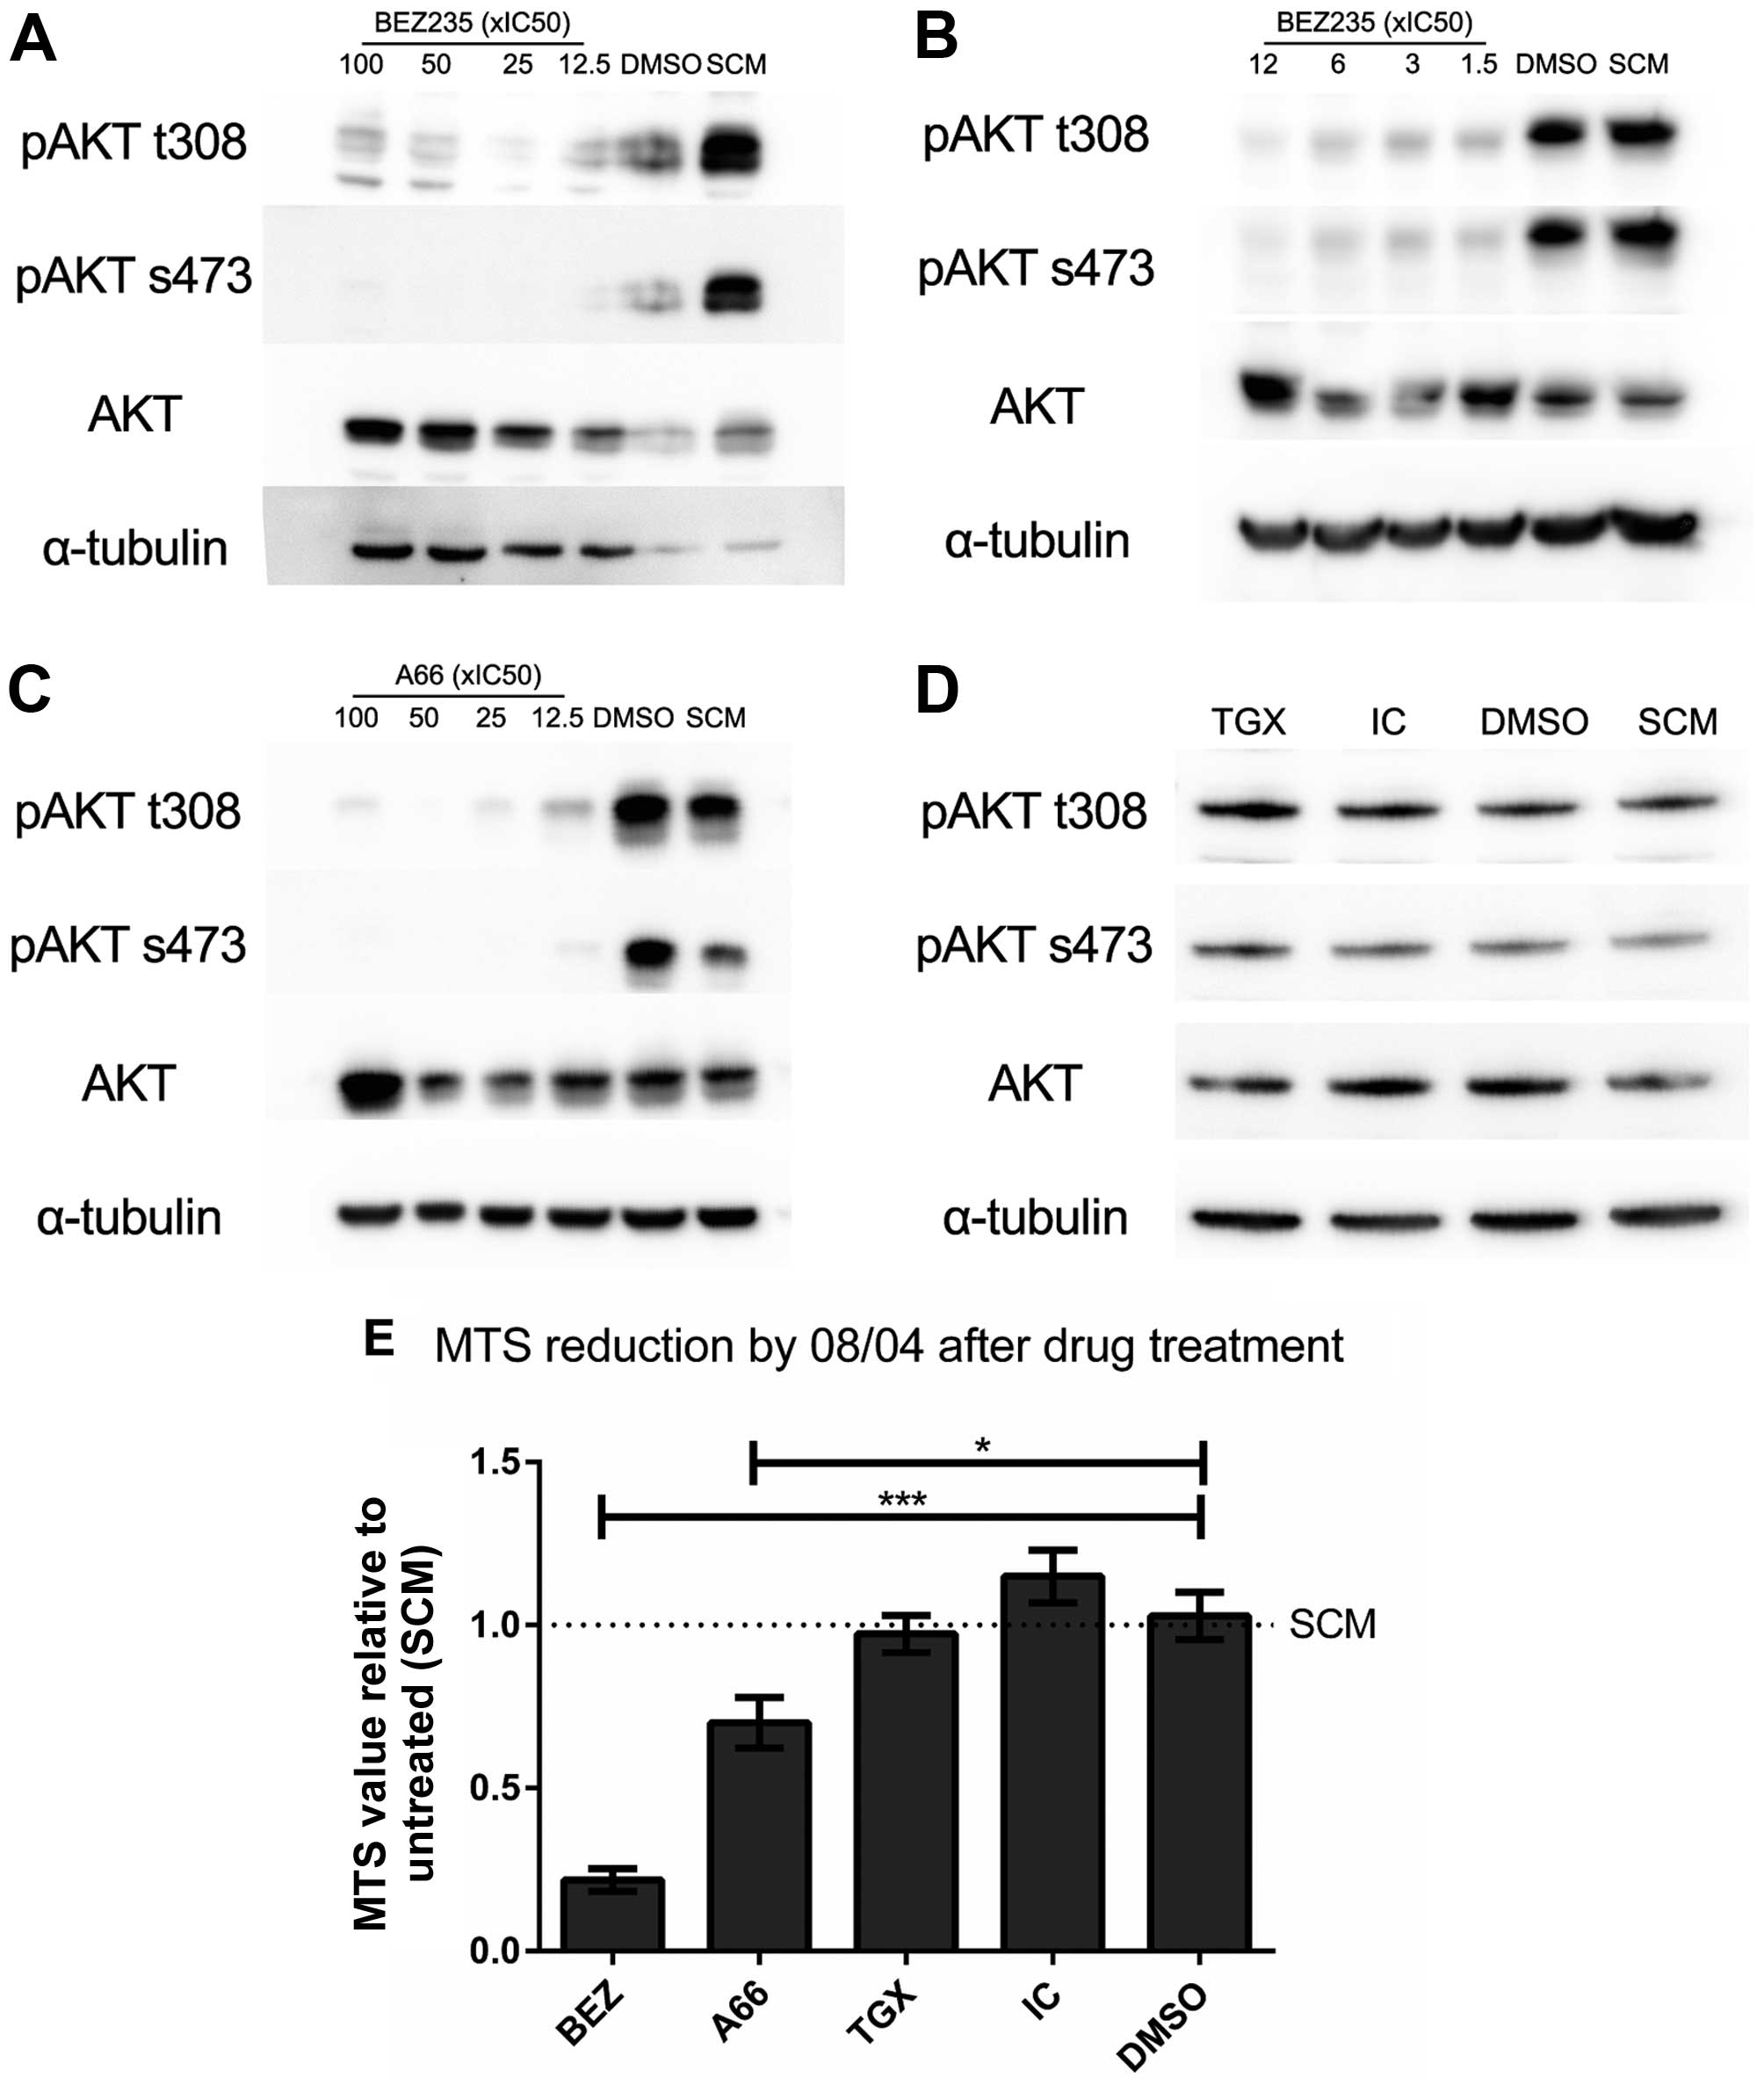 Targeted inhibition of dominant PI3-kinase catalytic isoforms